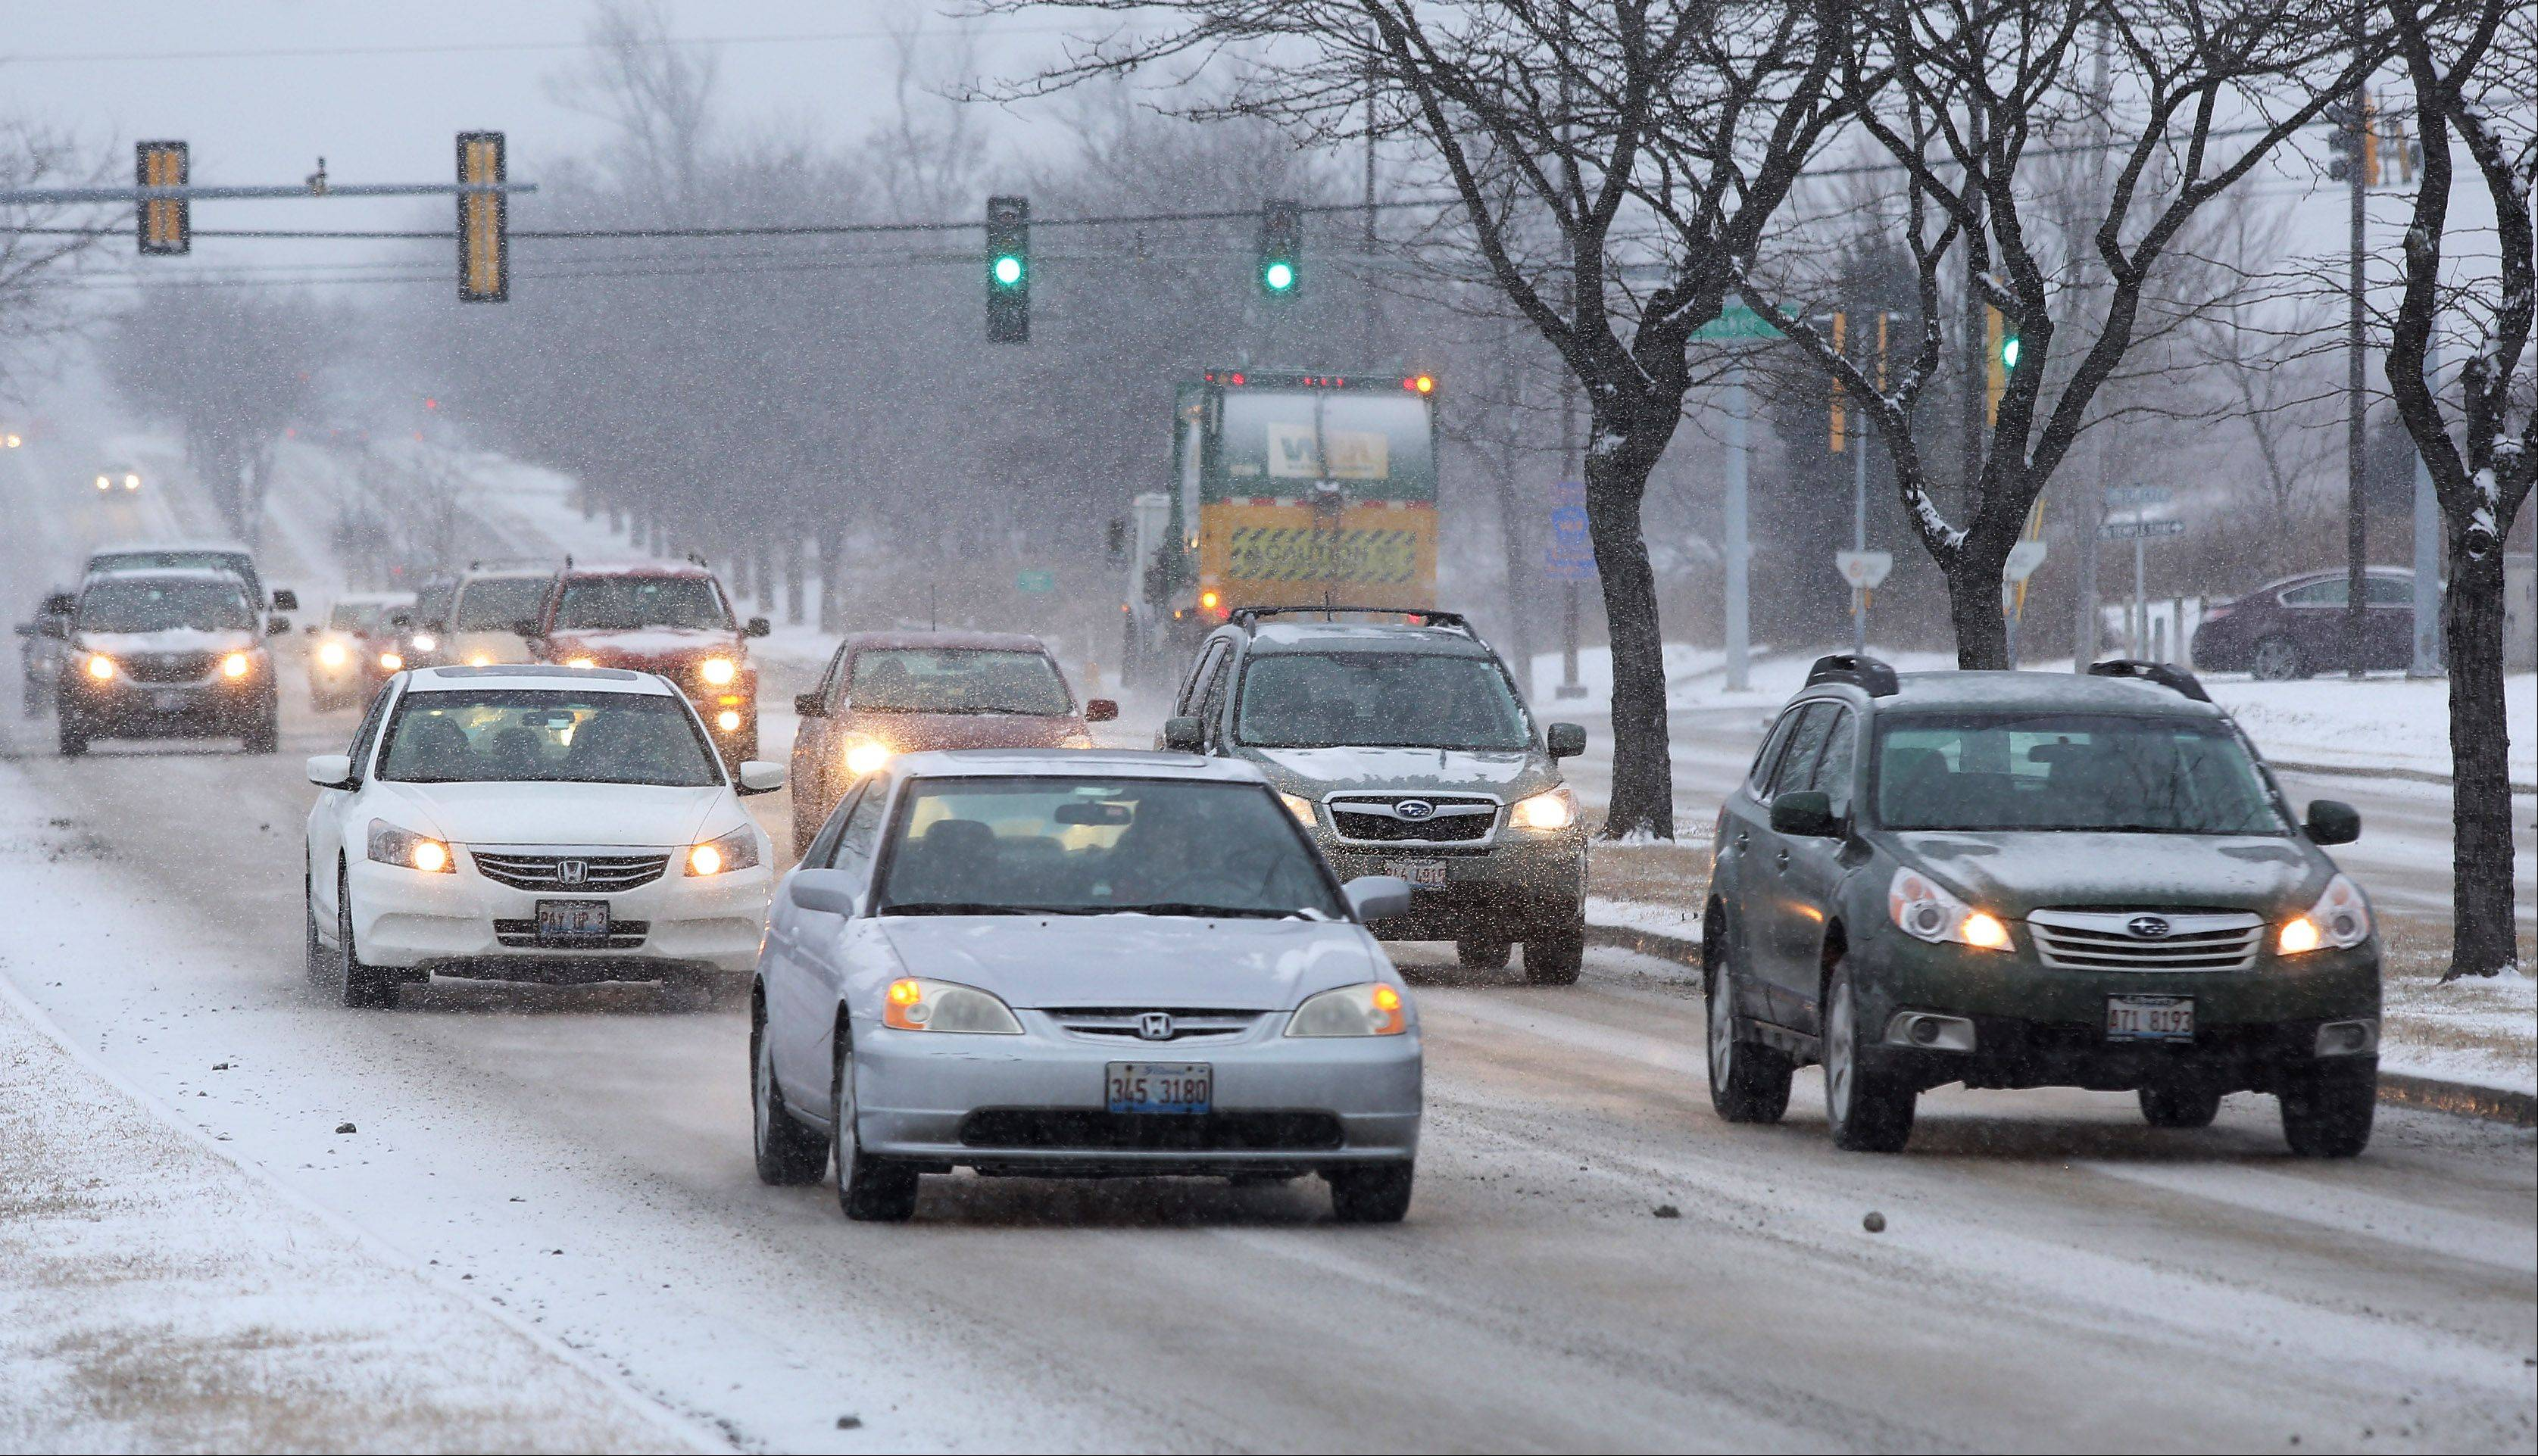 Snow started falling Tuesday just in time to slow down rush hour traffic along Arlington Heights Road in Buffalo Grove.